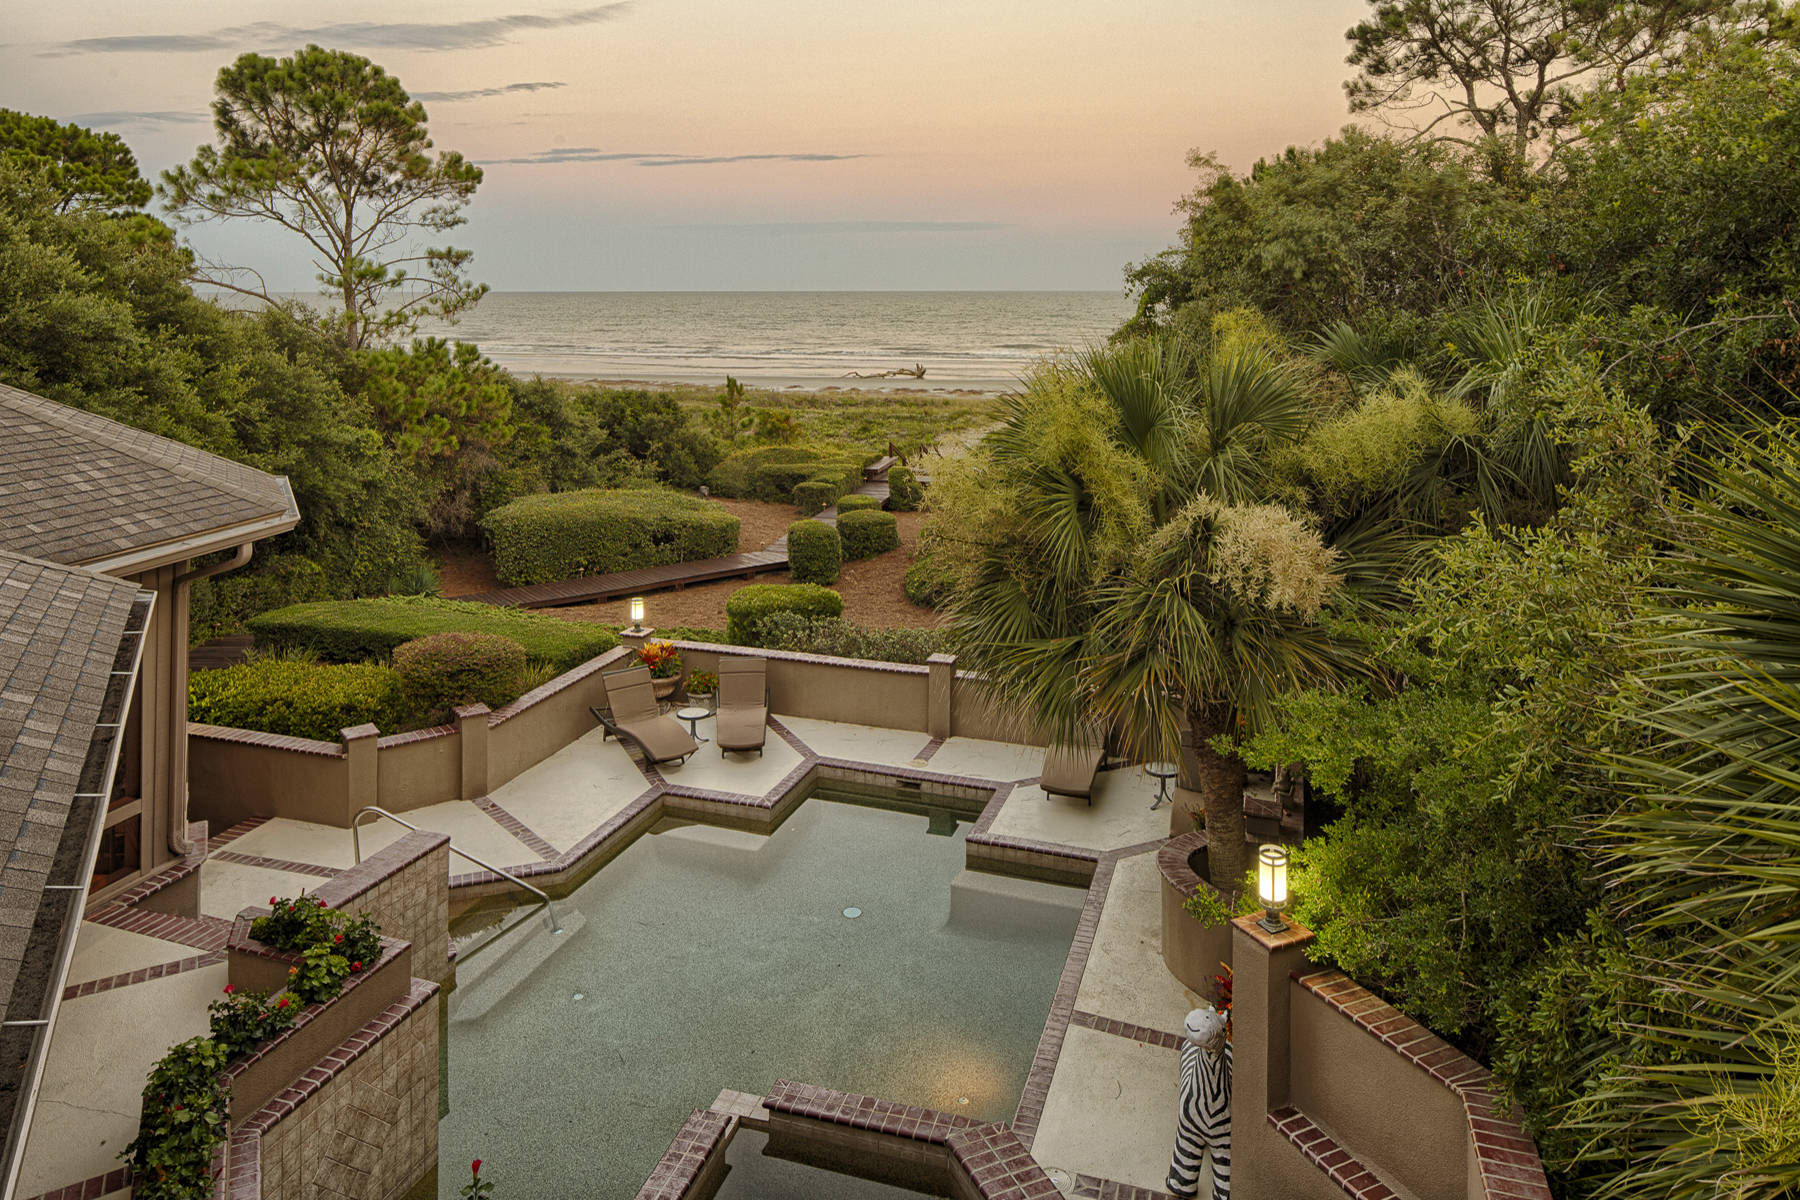 Single Family Home for Sale at 22 Duck Hawk Road 22 Duck Hawk Road Hilton Head, South Carolina 29928 United States